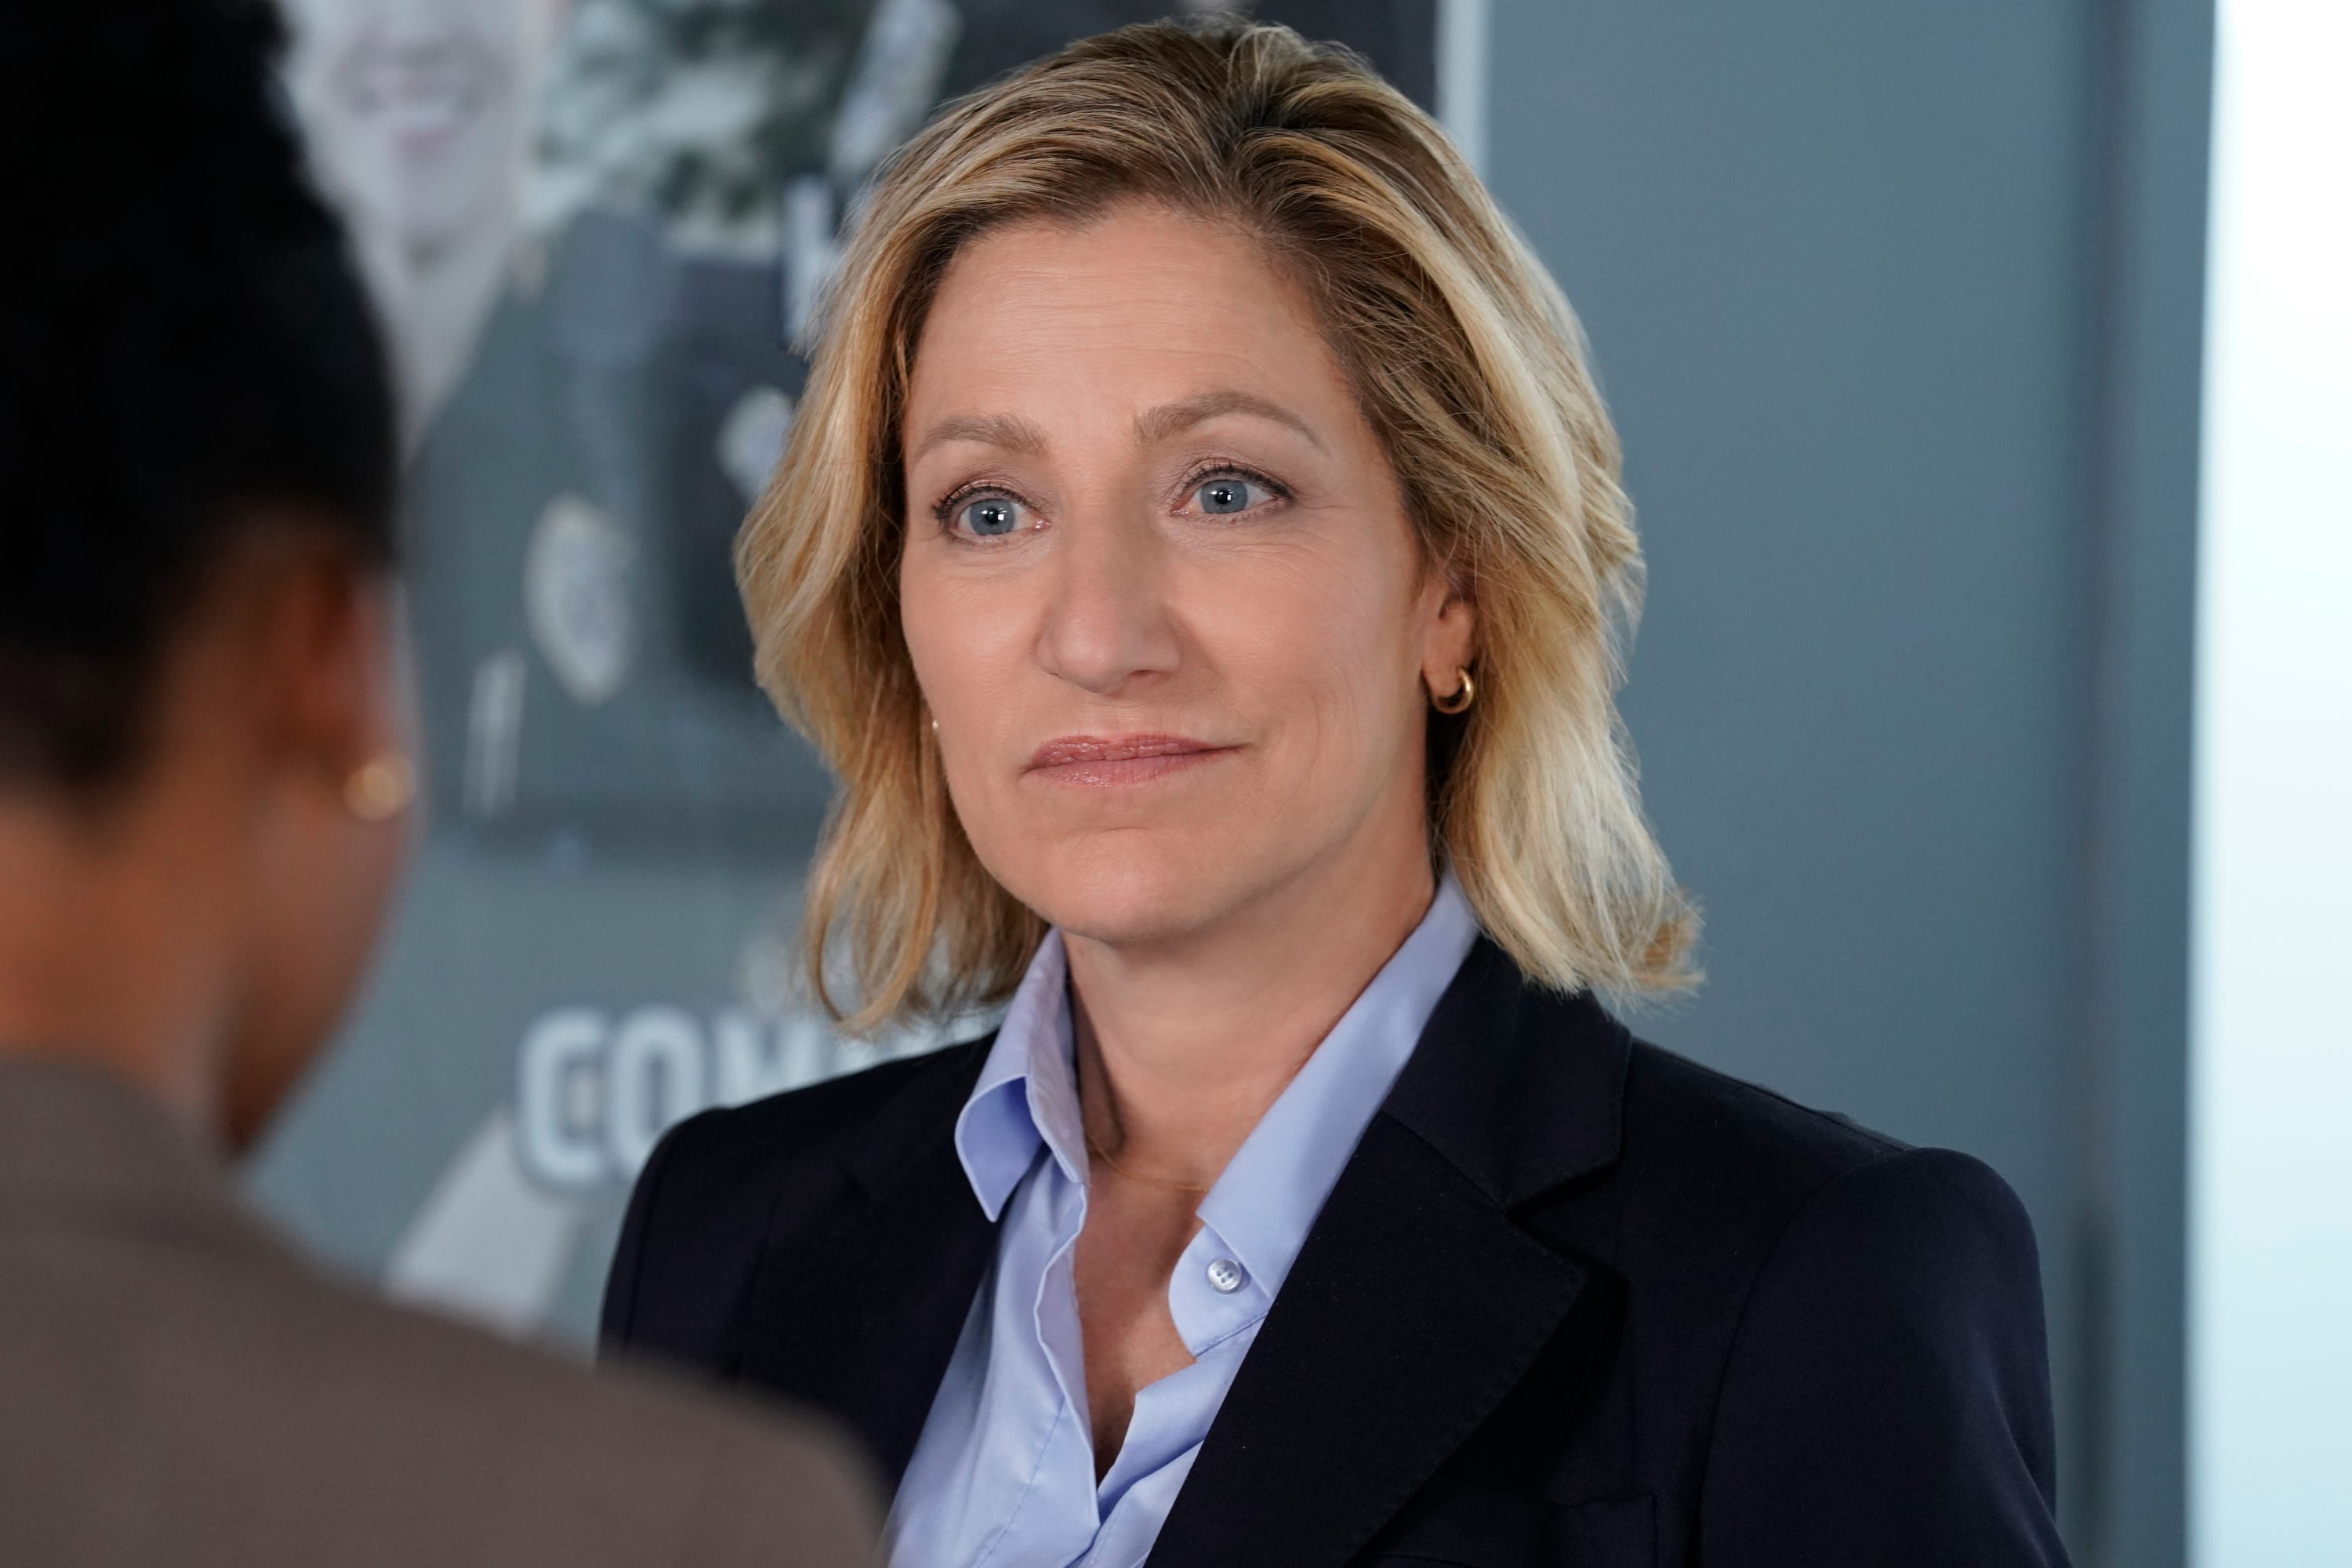 Edie Falco On Her New Cbs Drama Tommy And Reliving The Sopranos